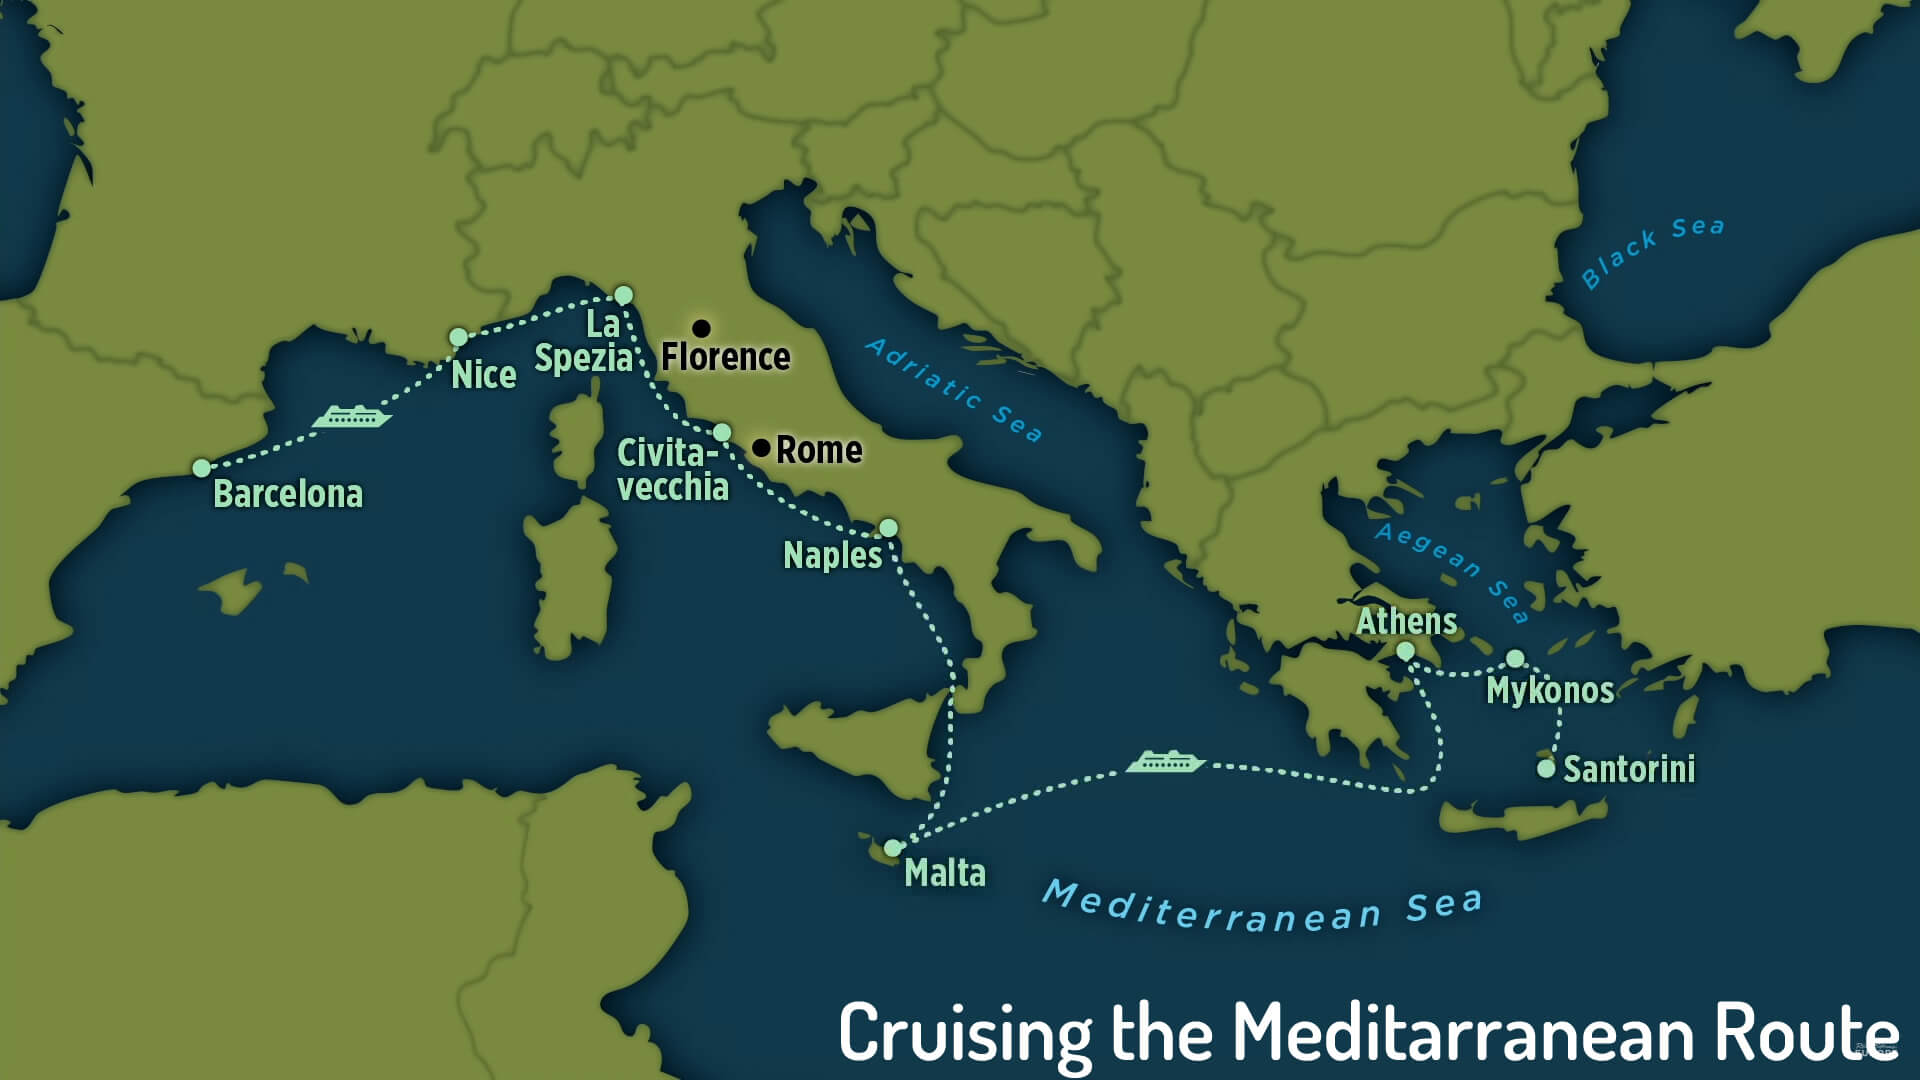 Cruising the Meditarranean Route